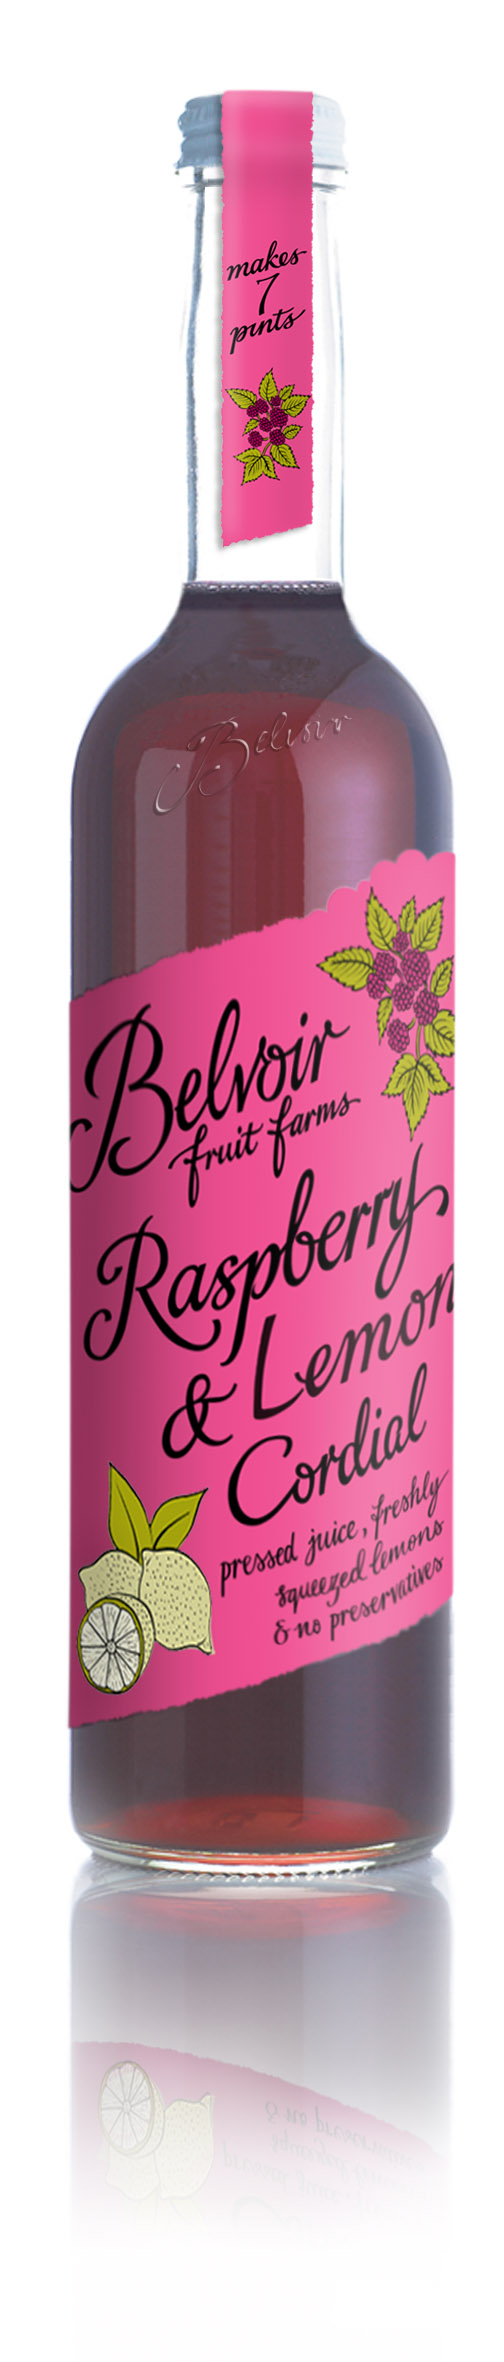 Raspberry & Lemon Cordial